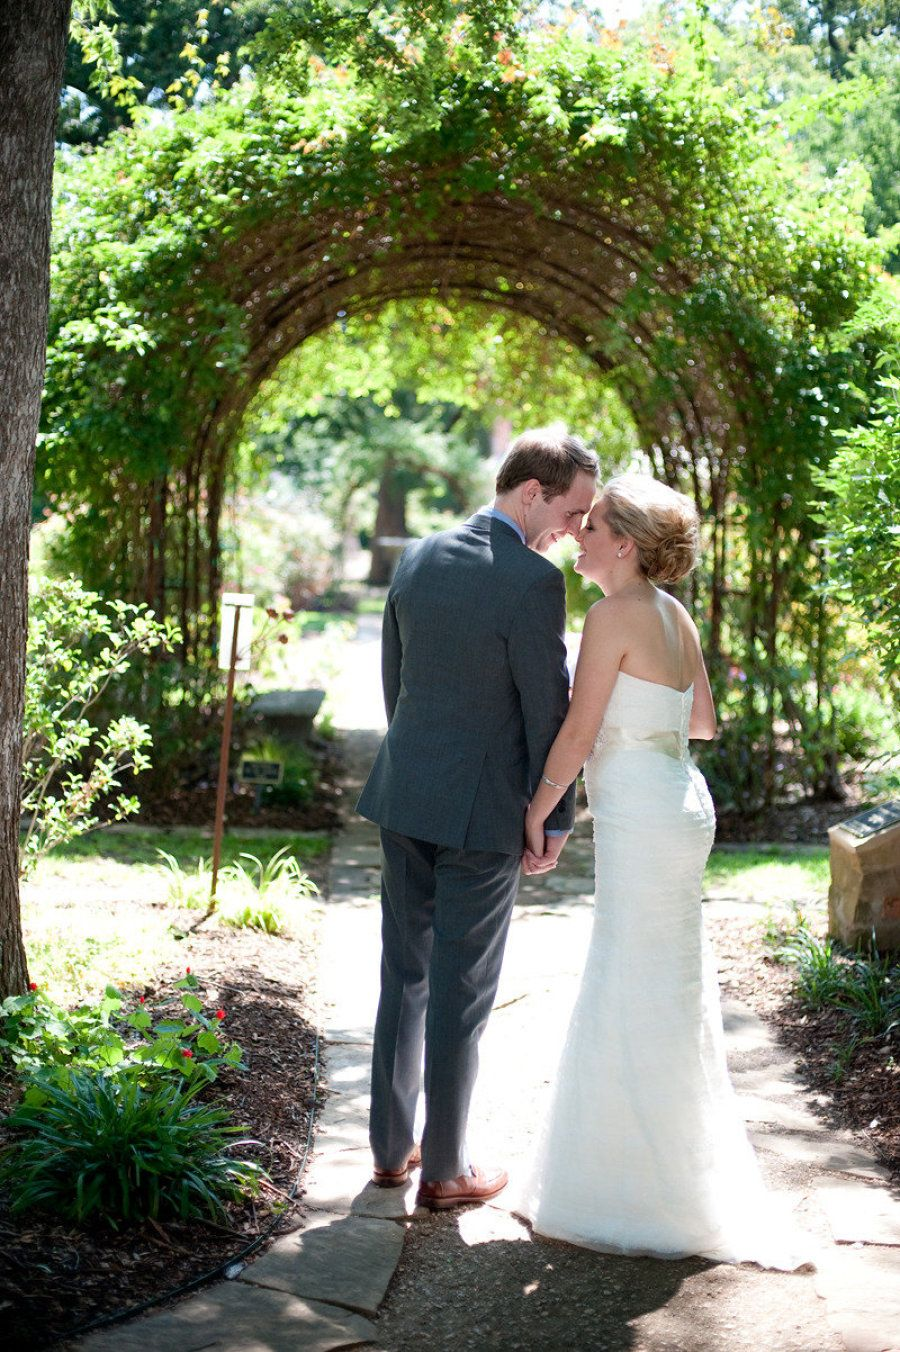 outdoor wedding venues in fort worth tx%0A Farmers Branch Historical Park  Dallas Wedding Venues Please contact The  Elegant Side event planning ssweddings